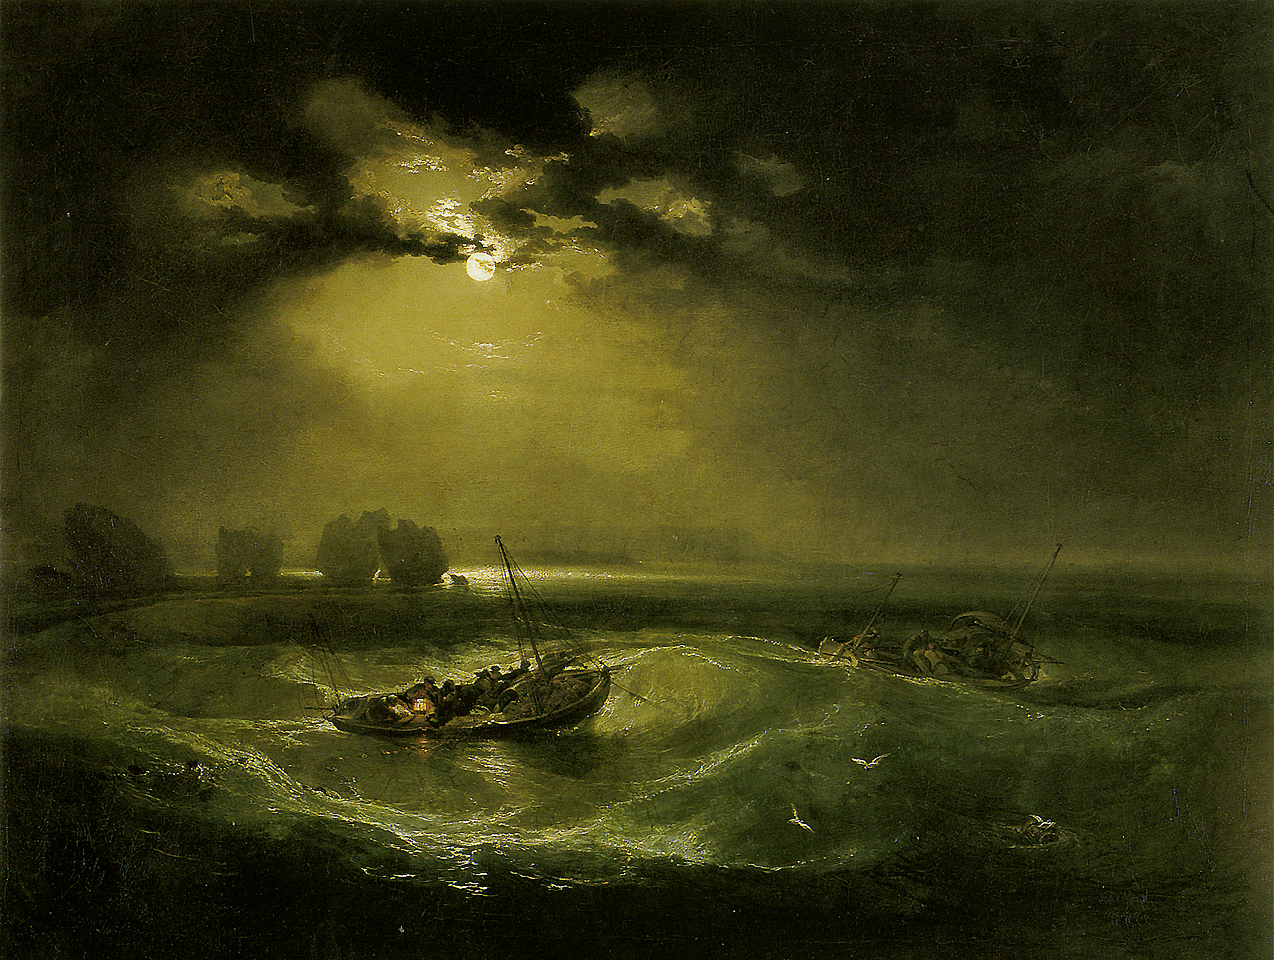 Reproduction Tableau Moderne Sur Toile Fishermen At Sea, C.1796 - William Turner - Wikiart.org